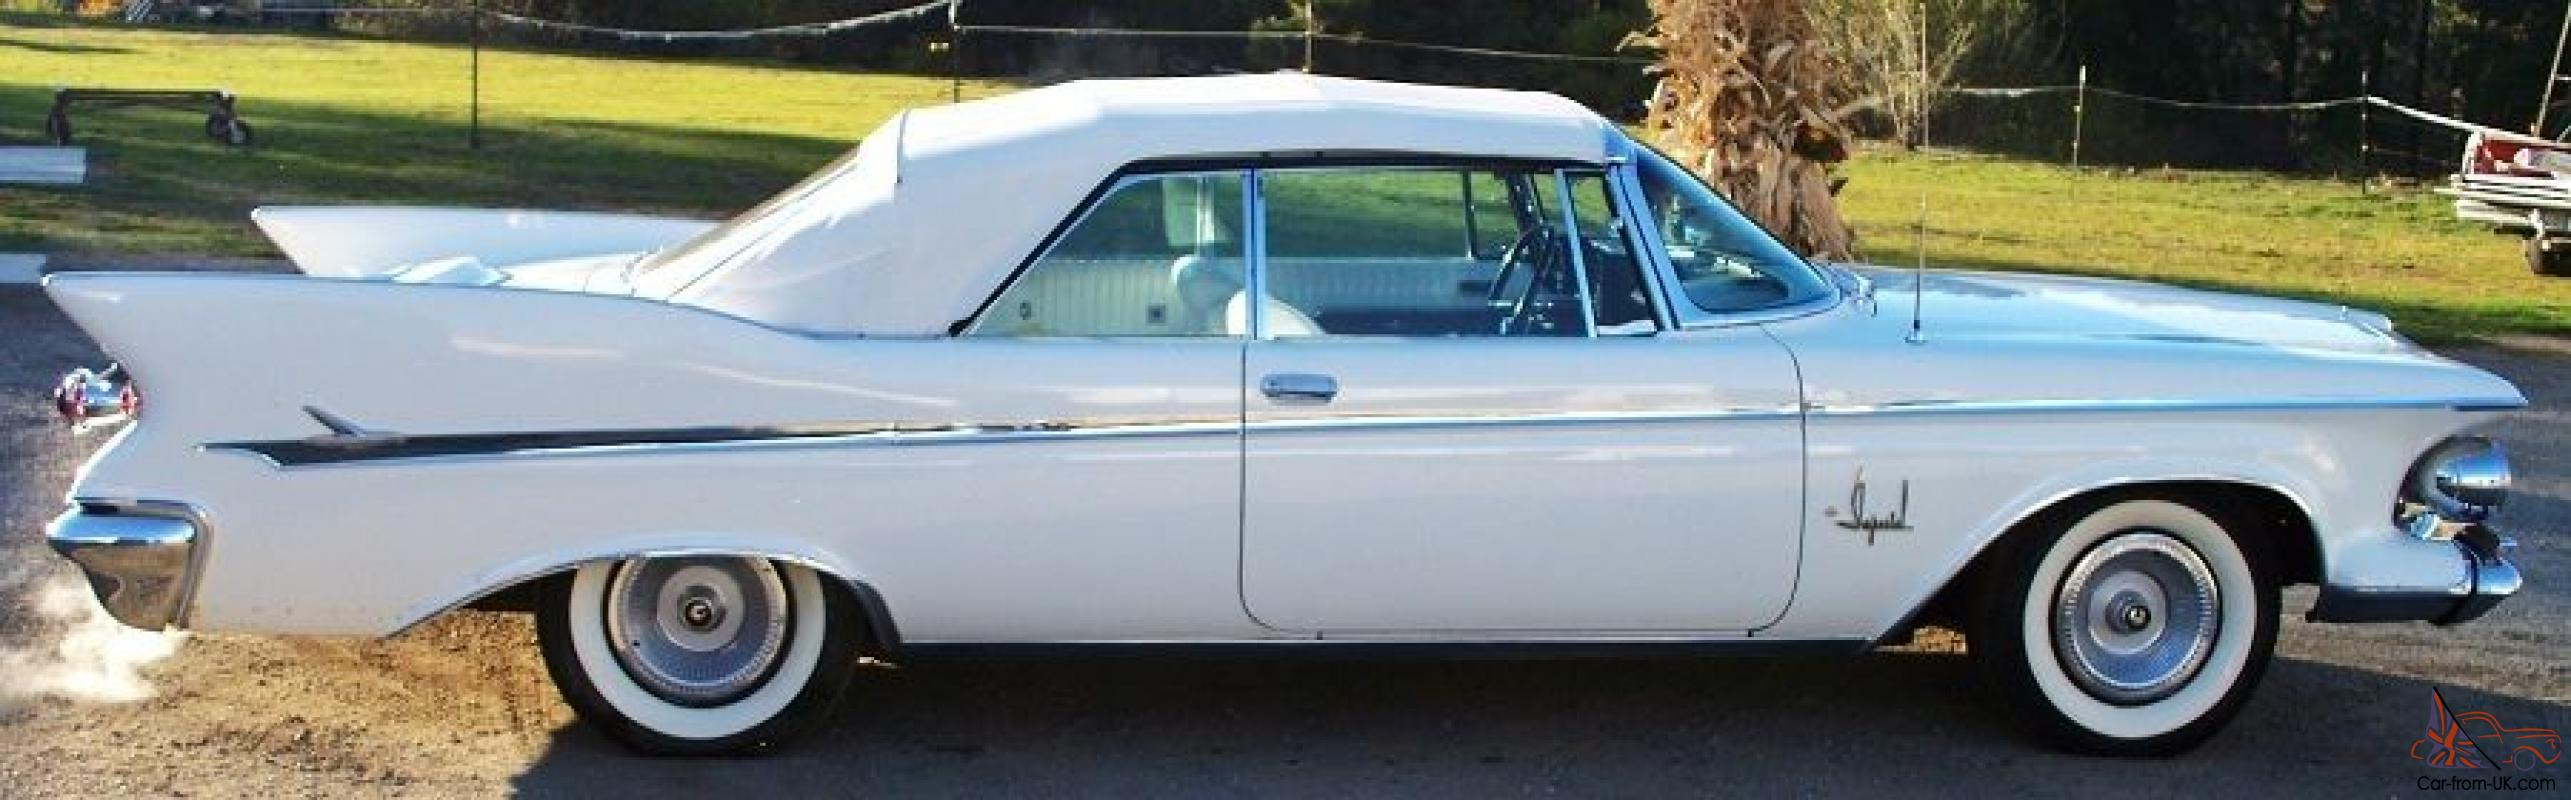 1961 chrysler imperial convertible nice kept in dry. Black Bedroom Furniture Sets. Home Design Ideas